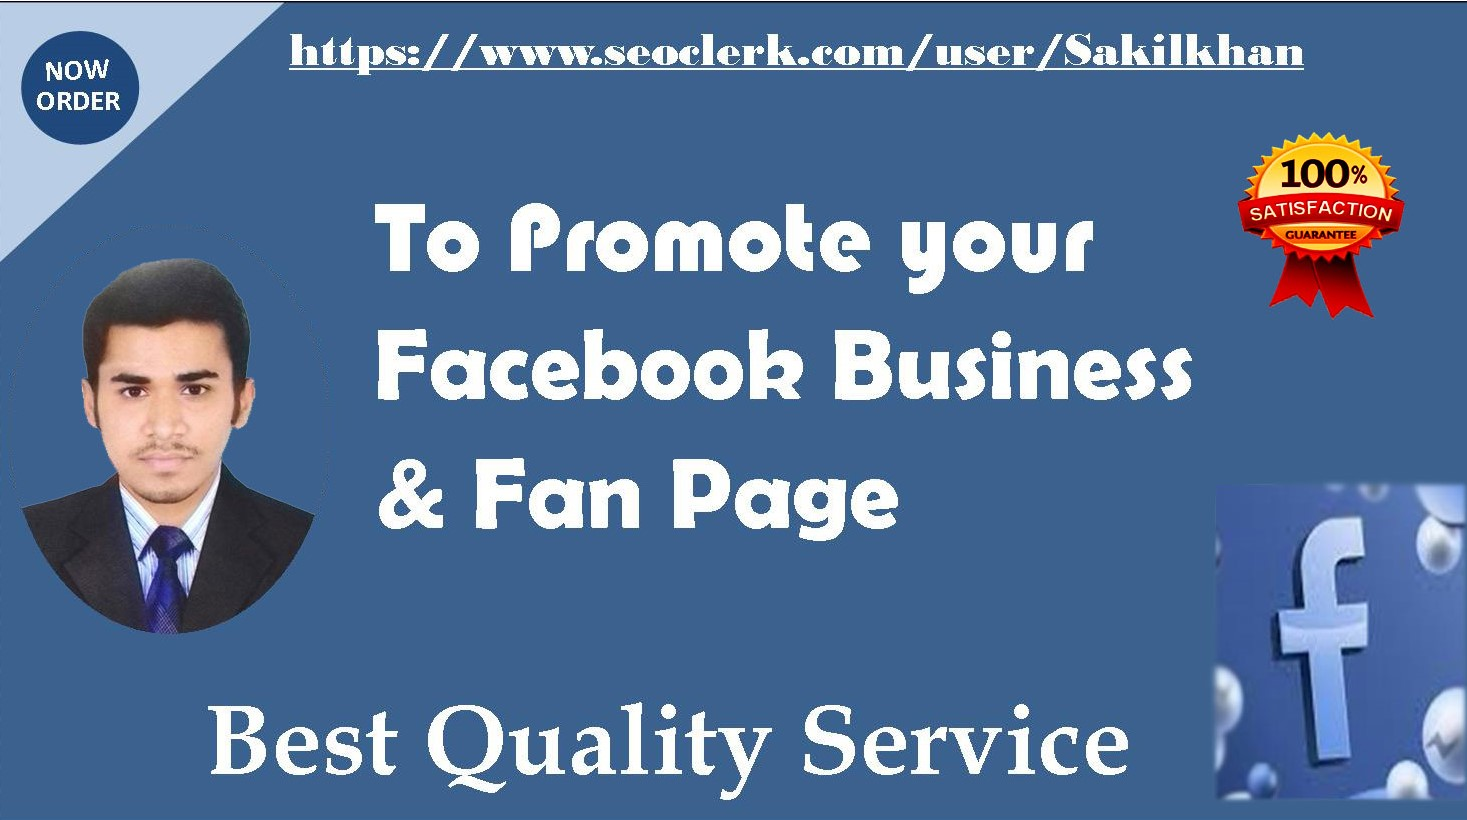 I will Create and Promote your Professional Facebook Business Page within a day